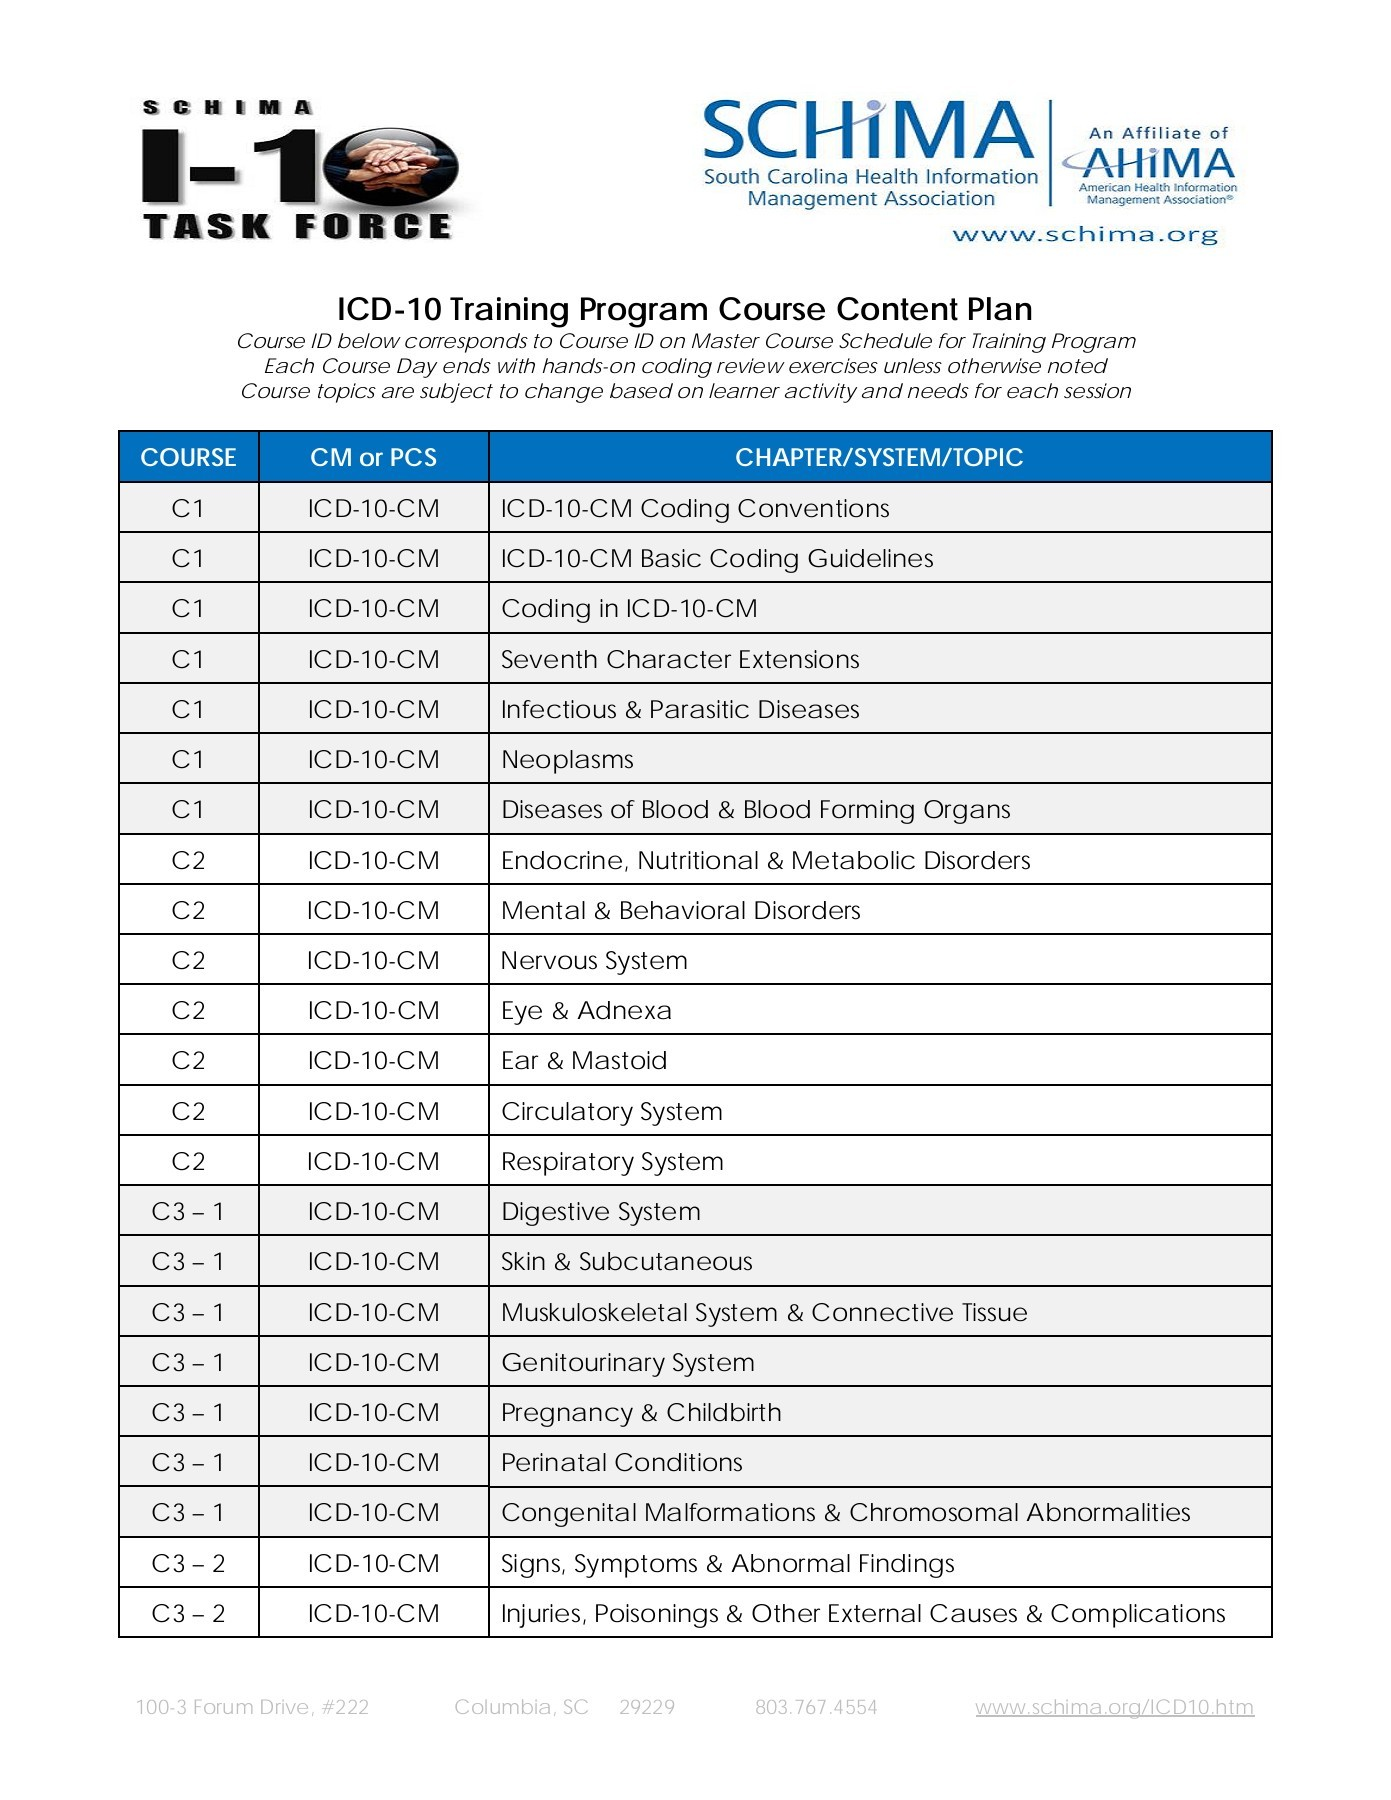 Icd 10 Training Program Course Content Plan Fliphtml5